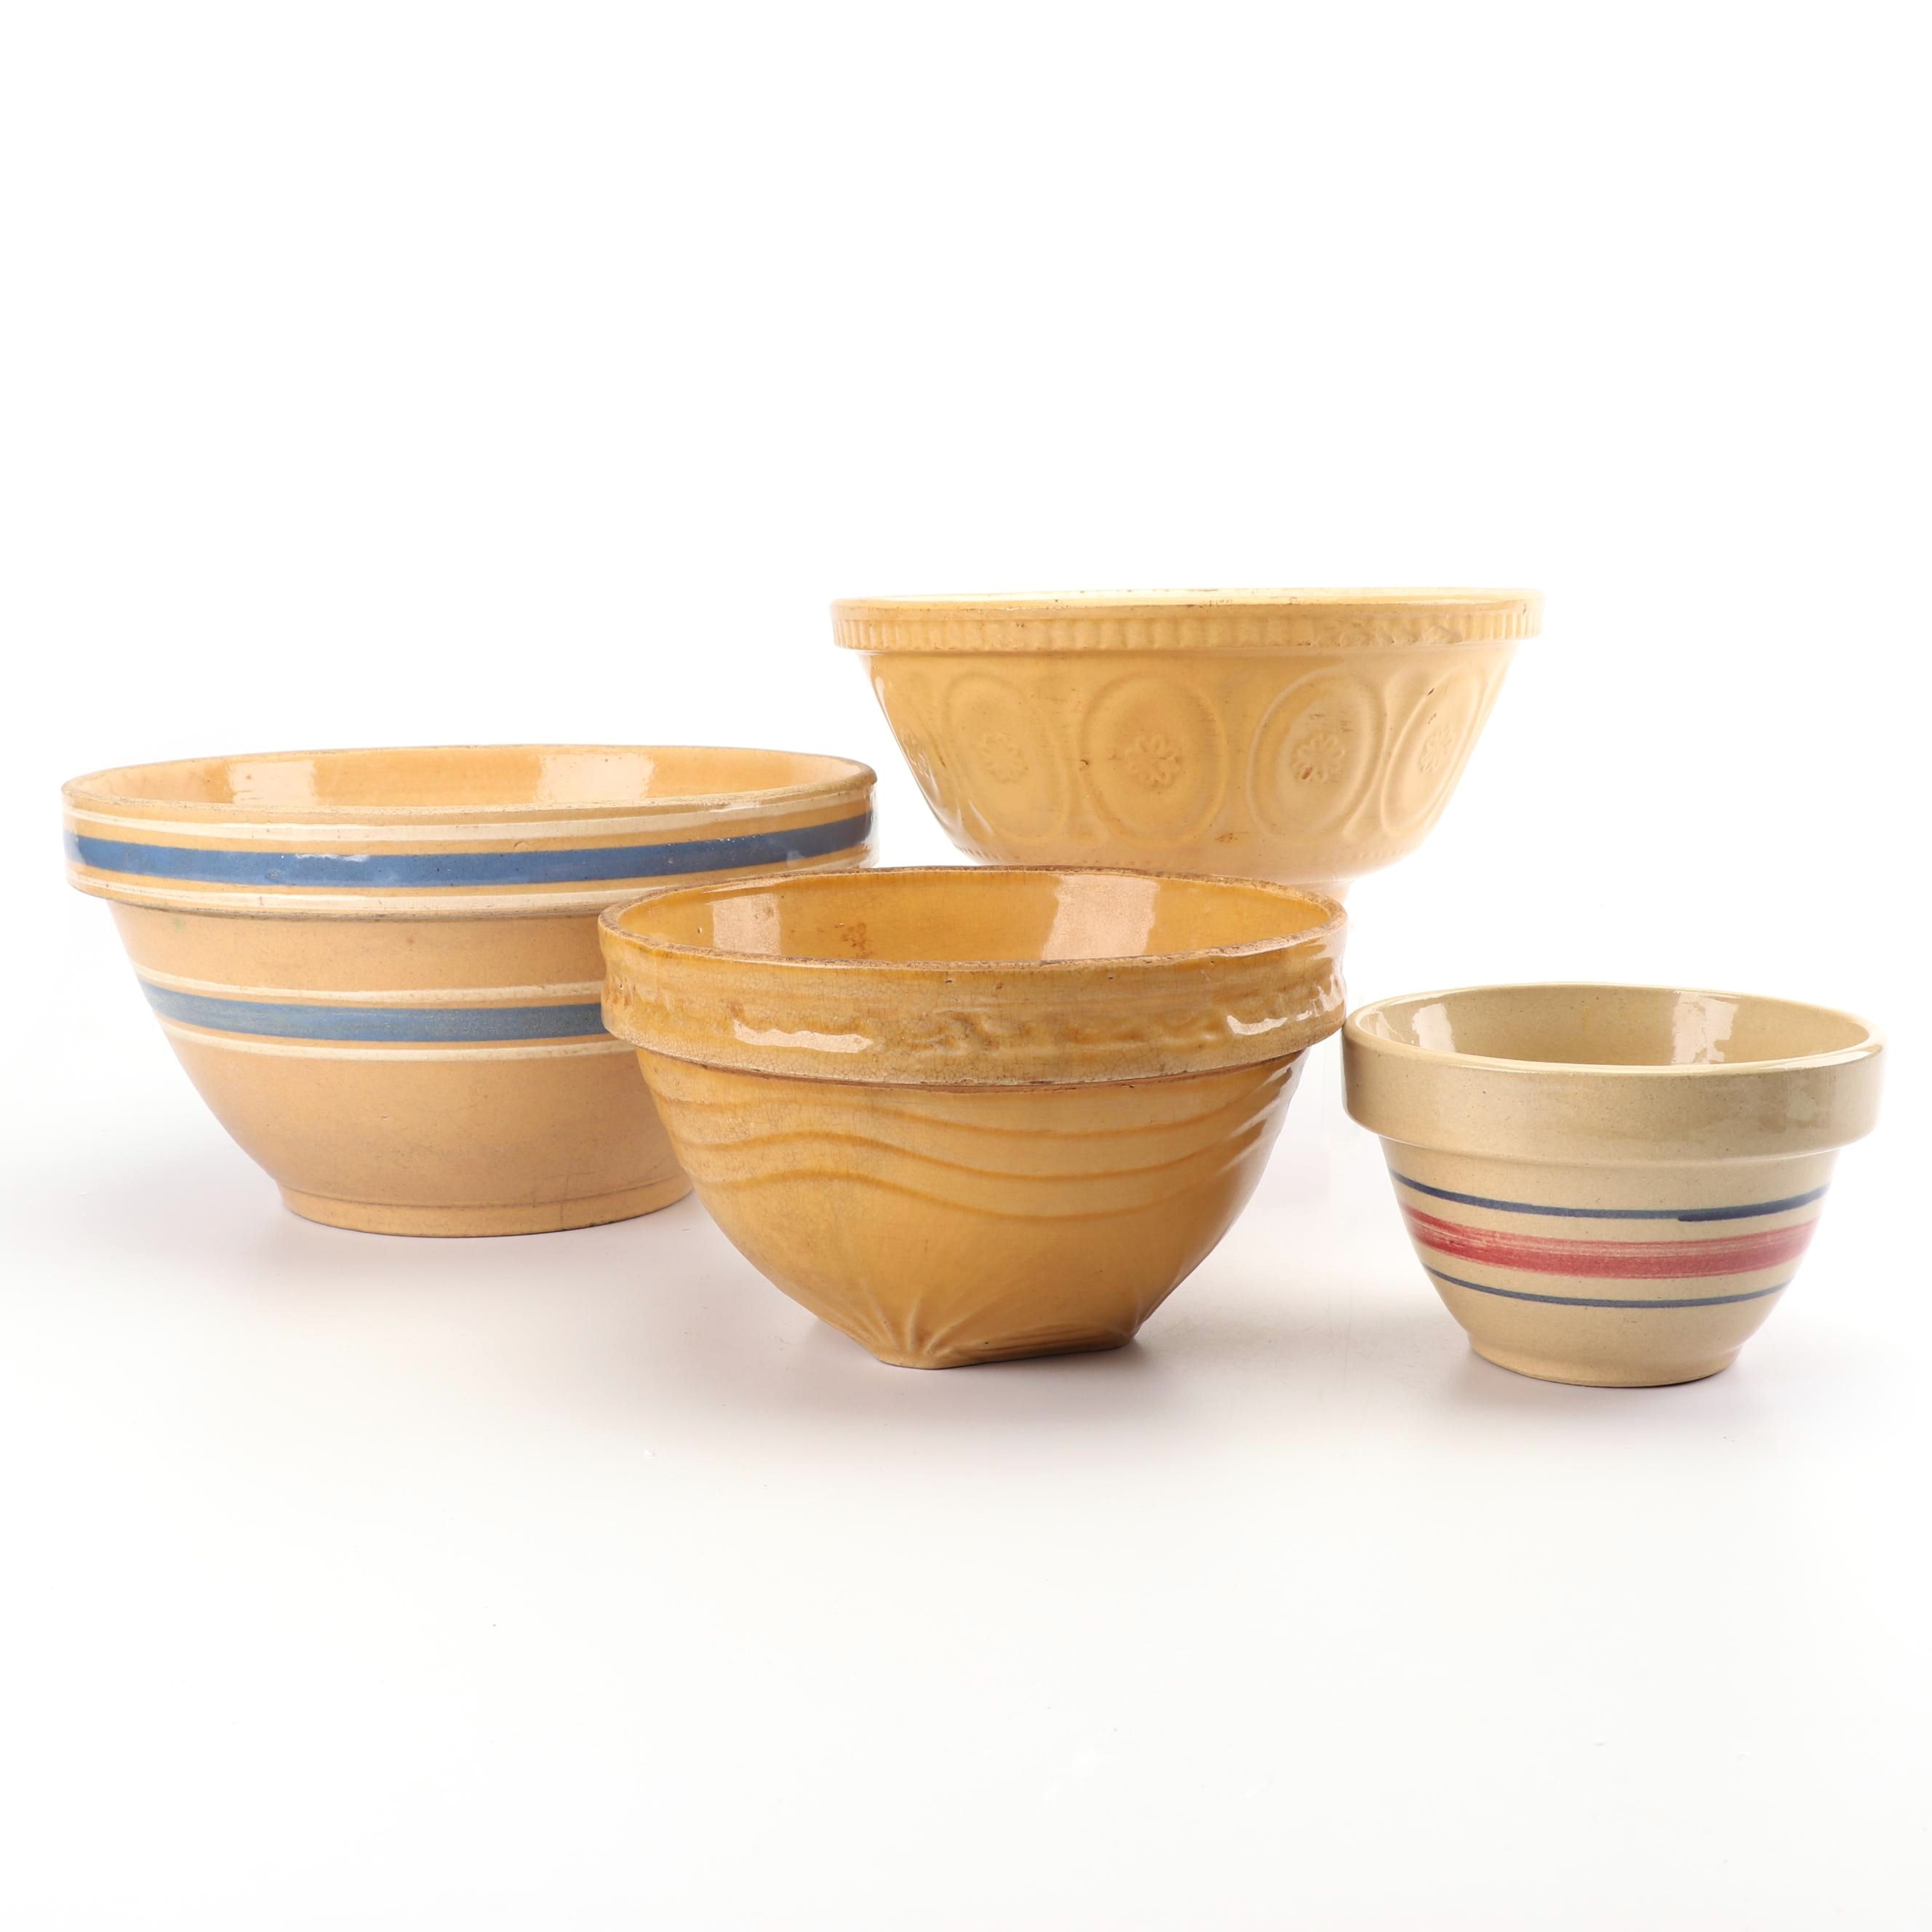 English and American Yellow Ware Mixing Bowls, Early 20th Century